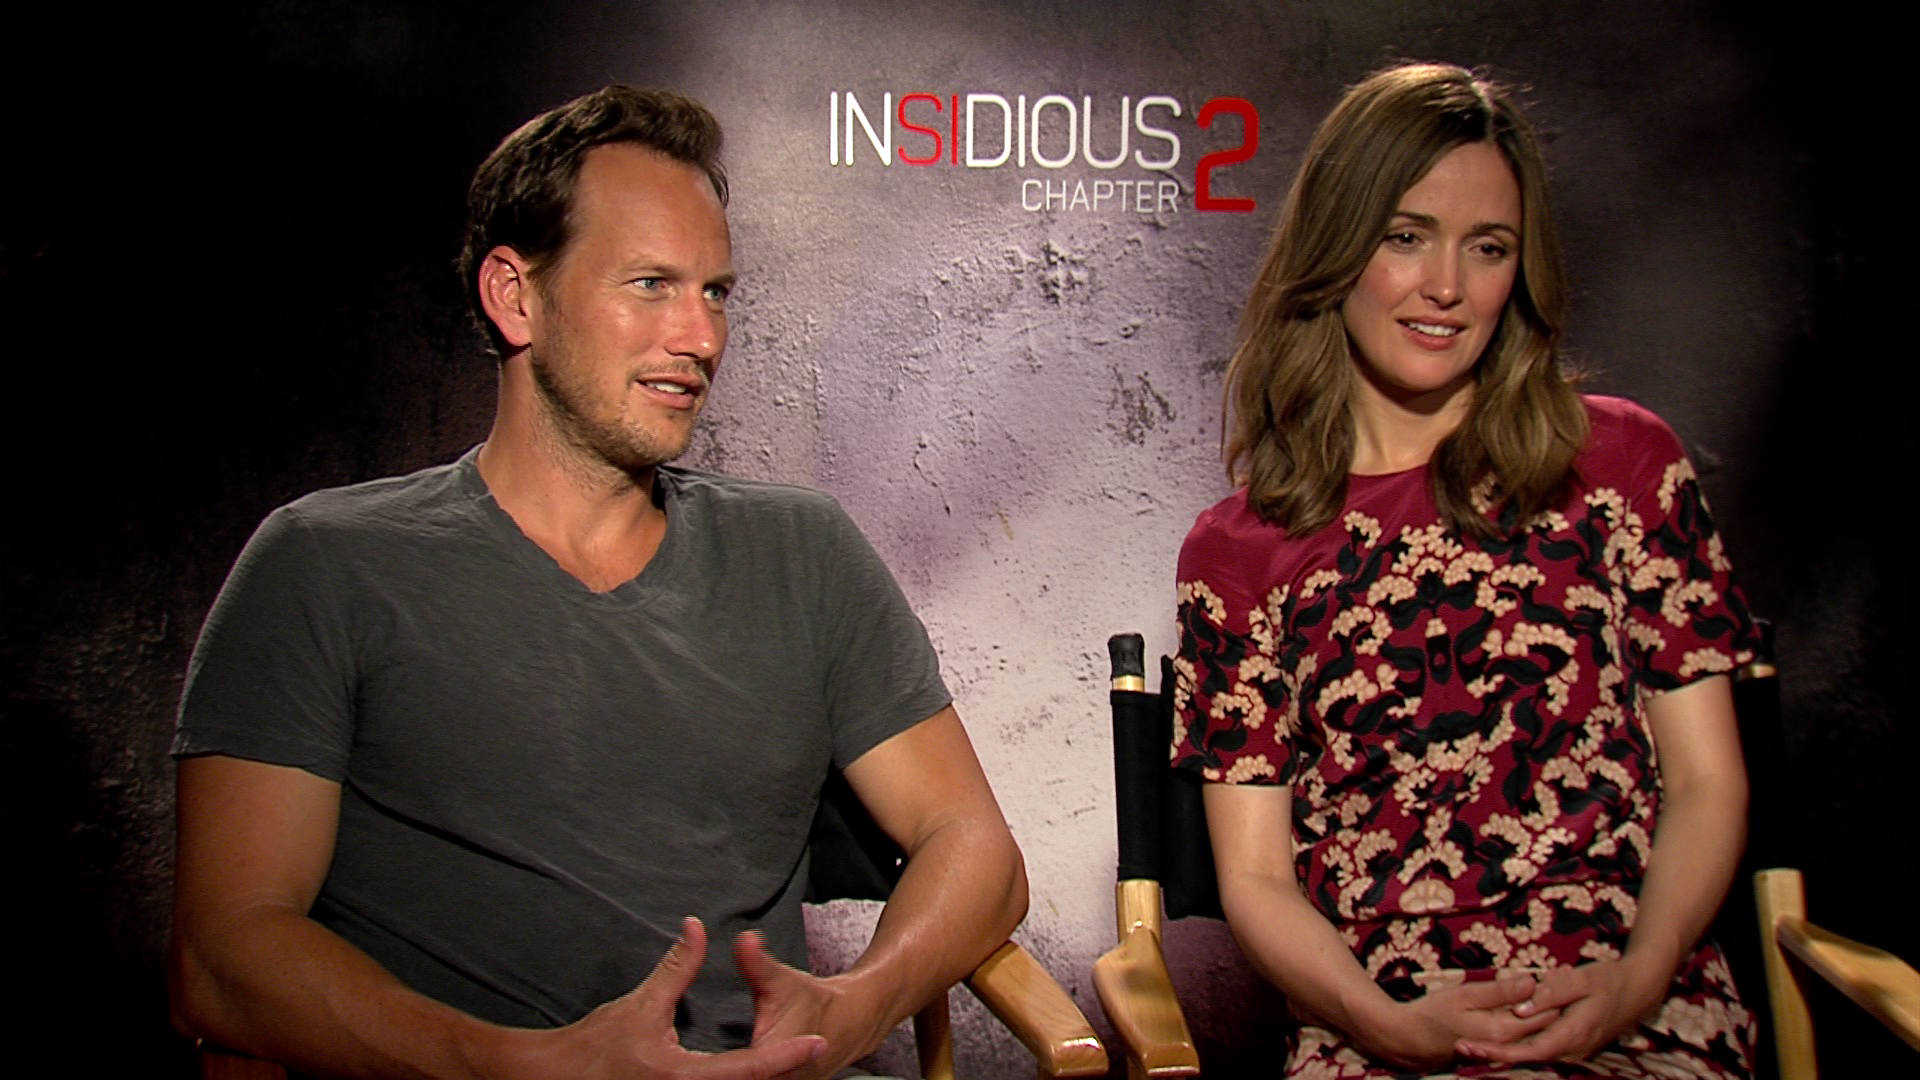 Exclusive Video Interview With The Cast Of Insidious Chapter 2